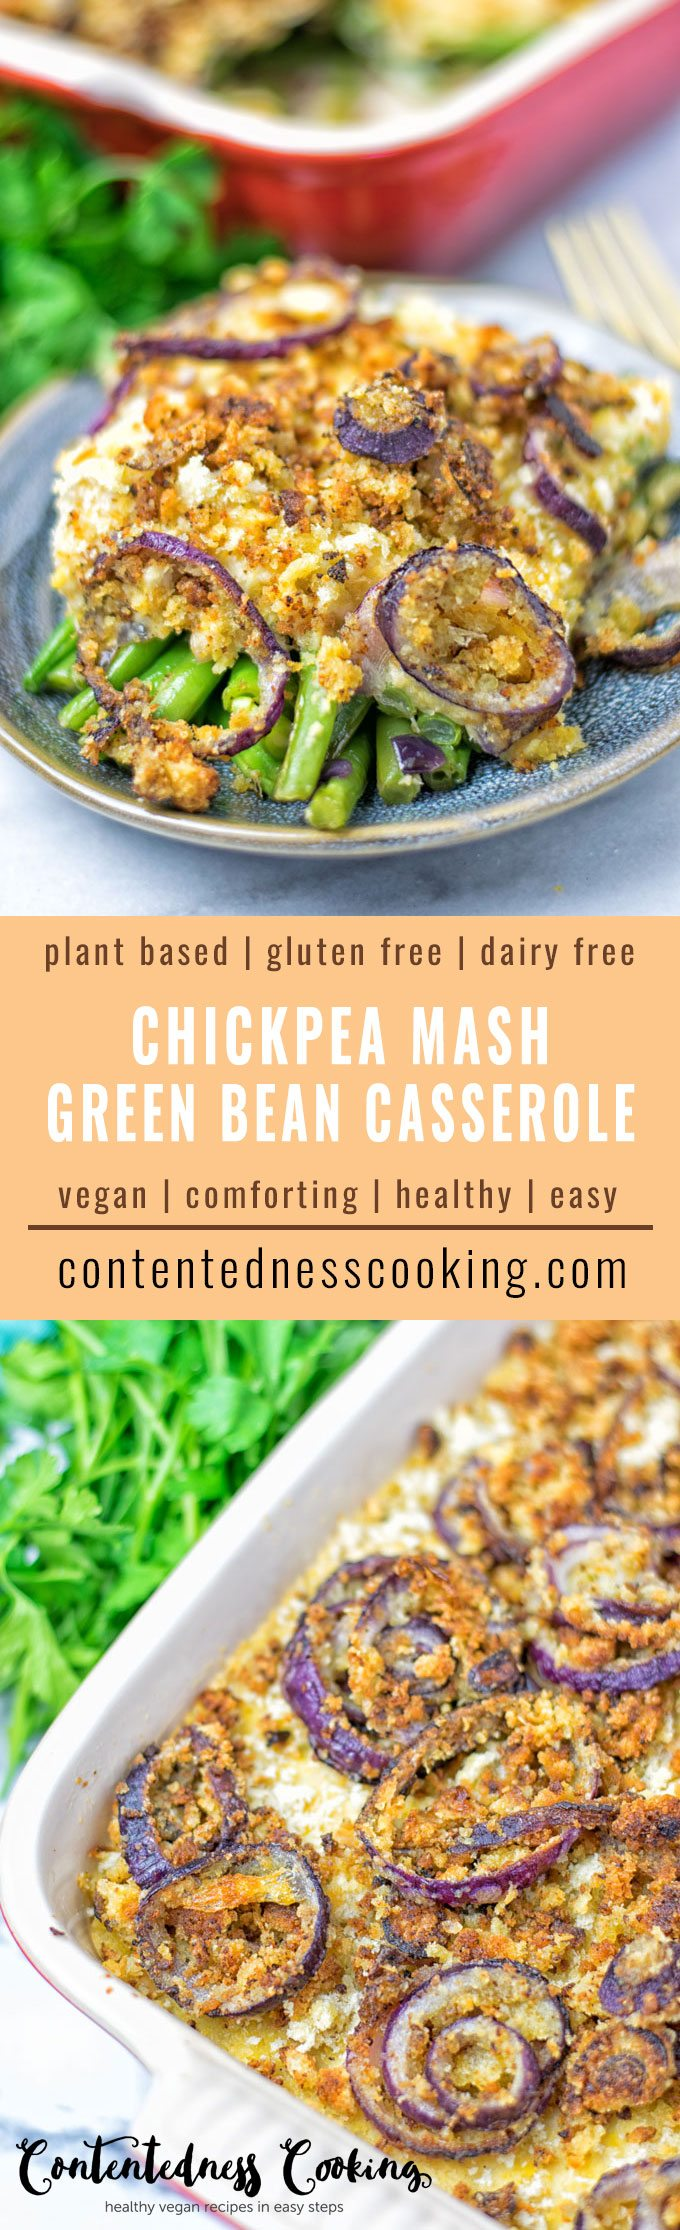 Collage of two pictures of this Chickpea Mash Green Bean Casserole with recipe title text.